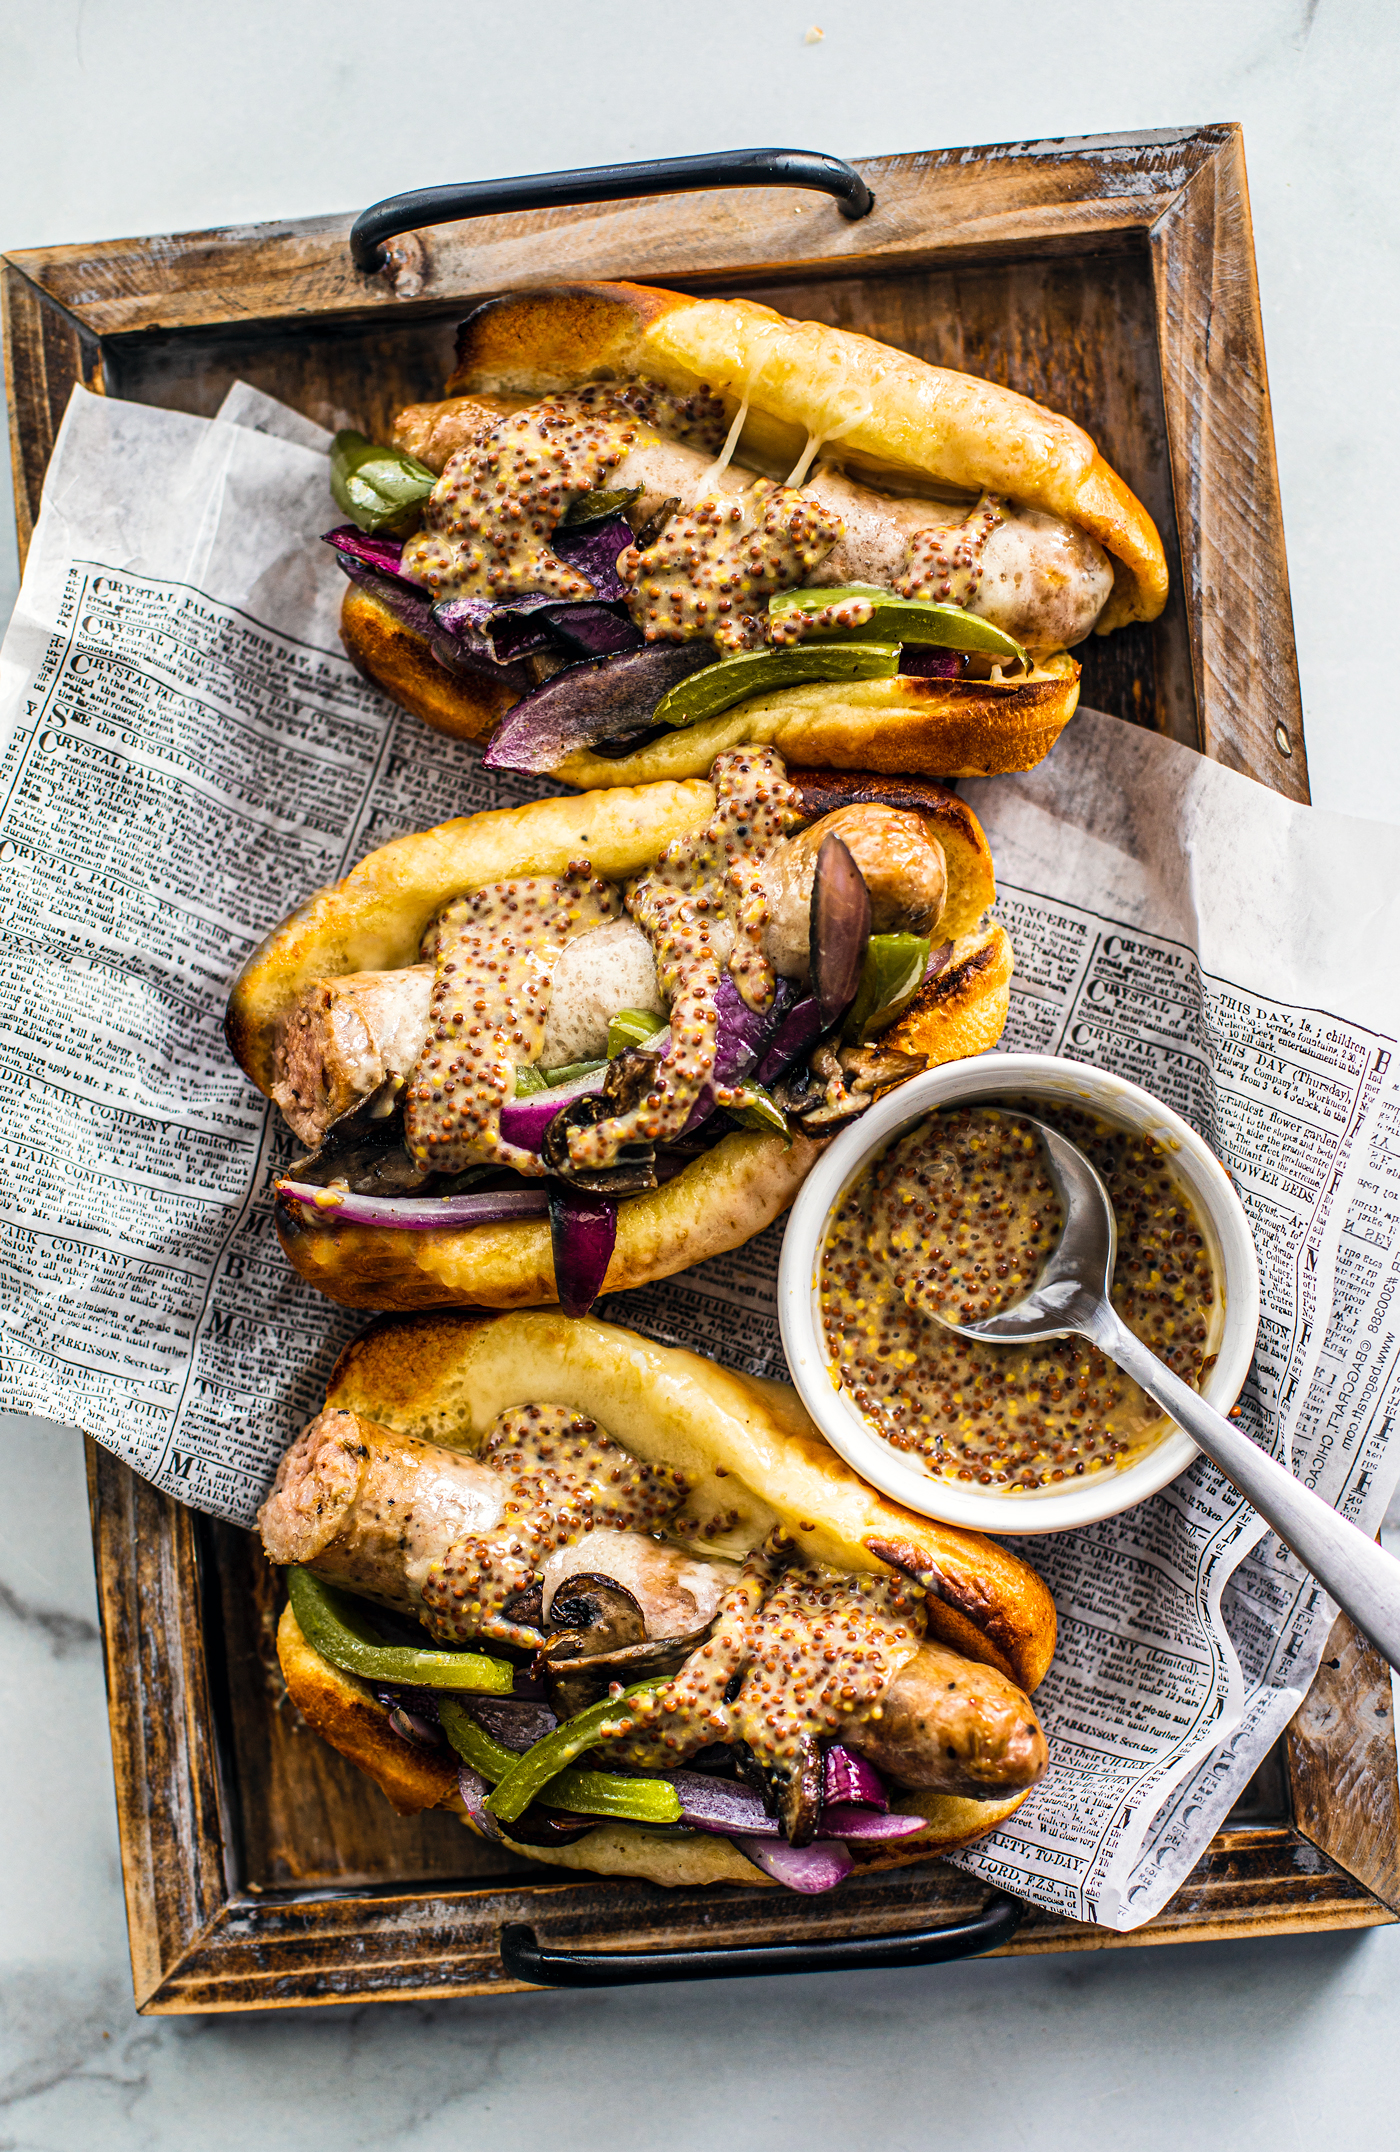 Three buns stuffed with sausage and peppers on a tray with a small bowl of mustard